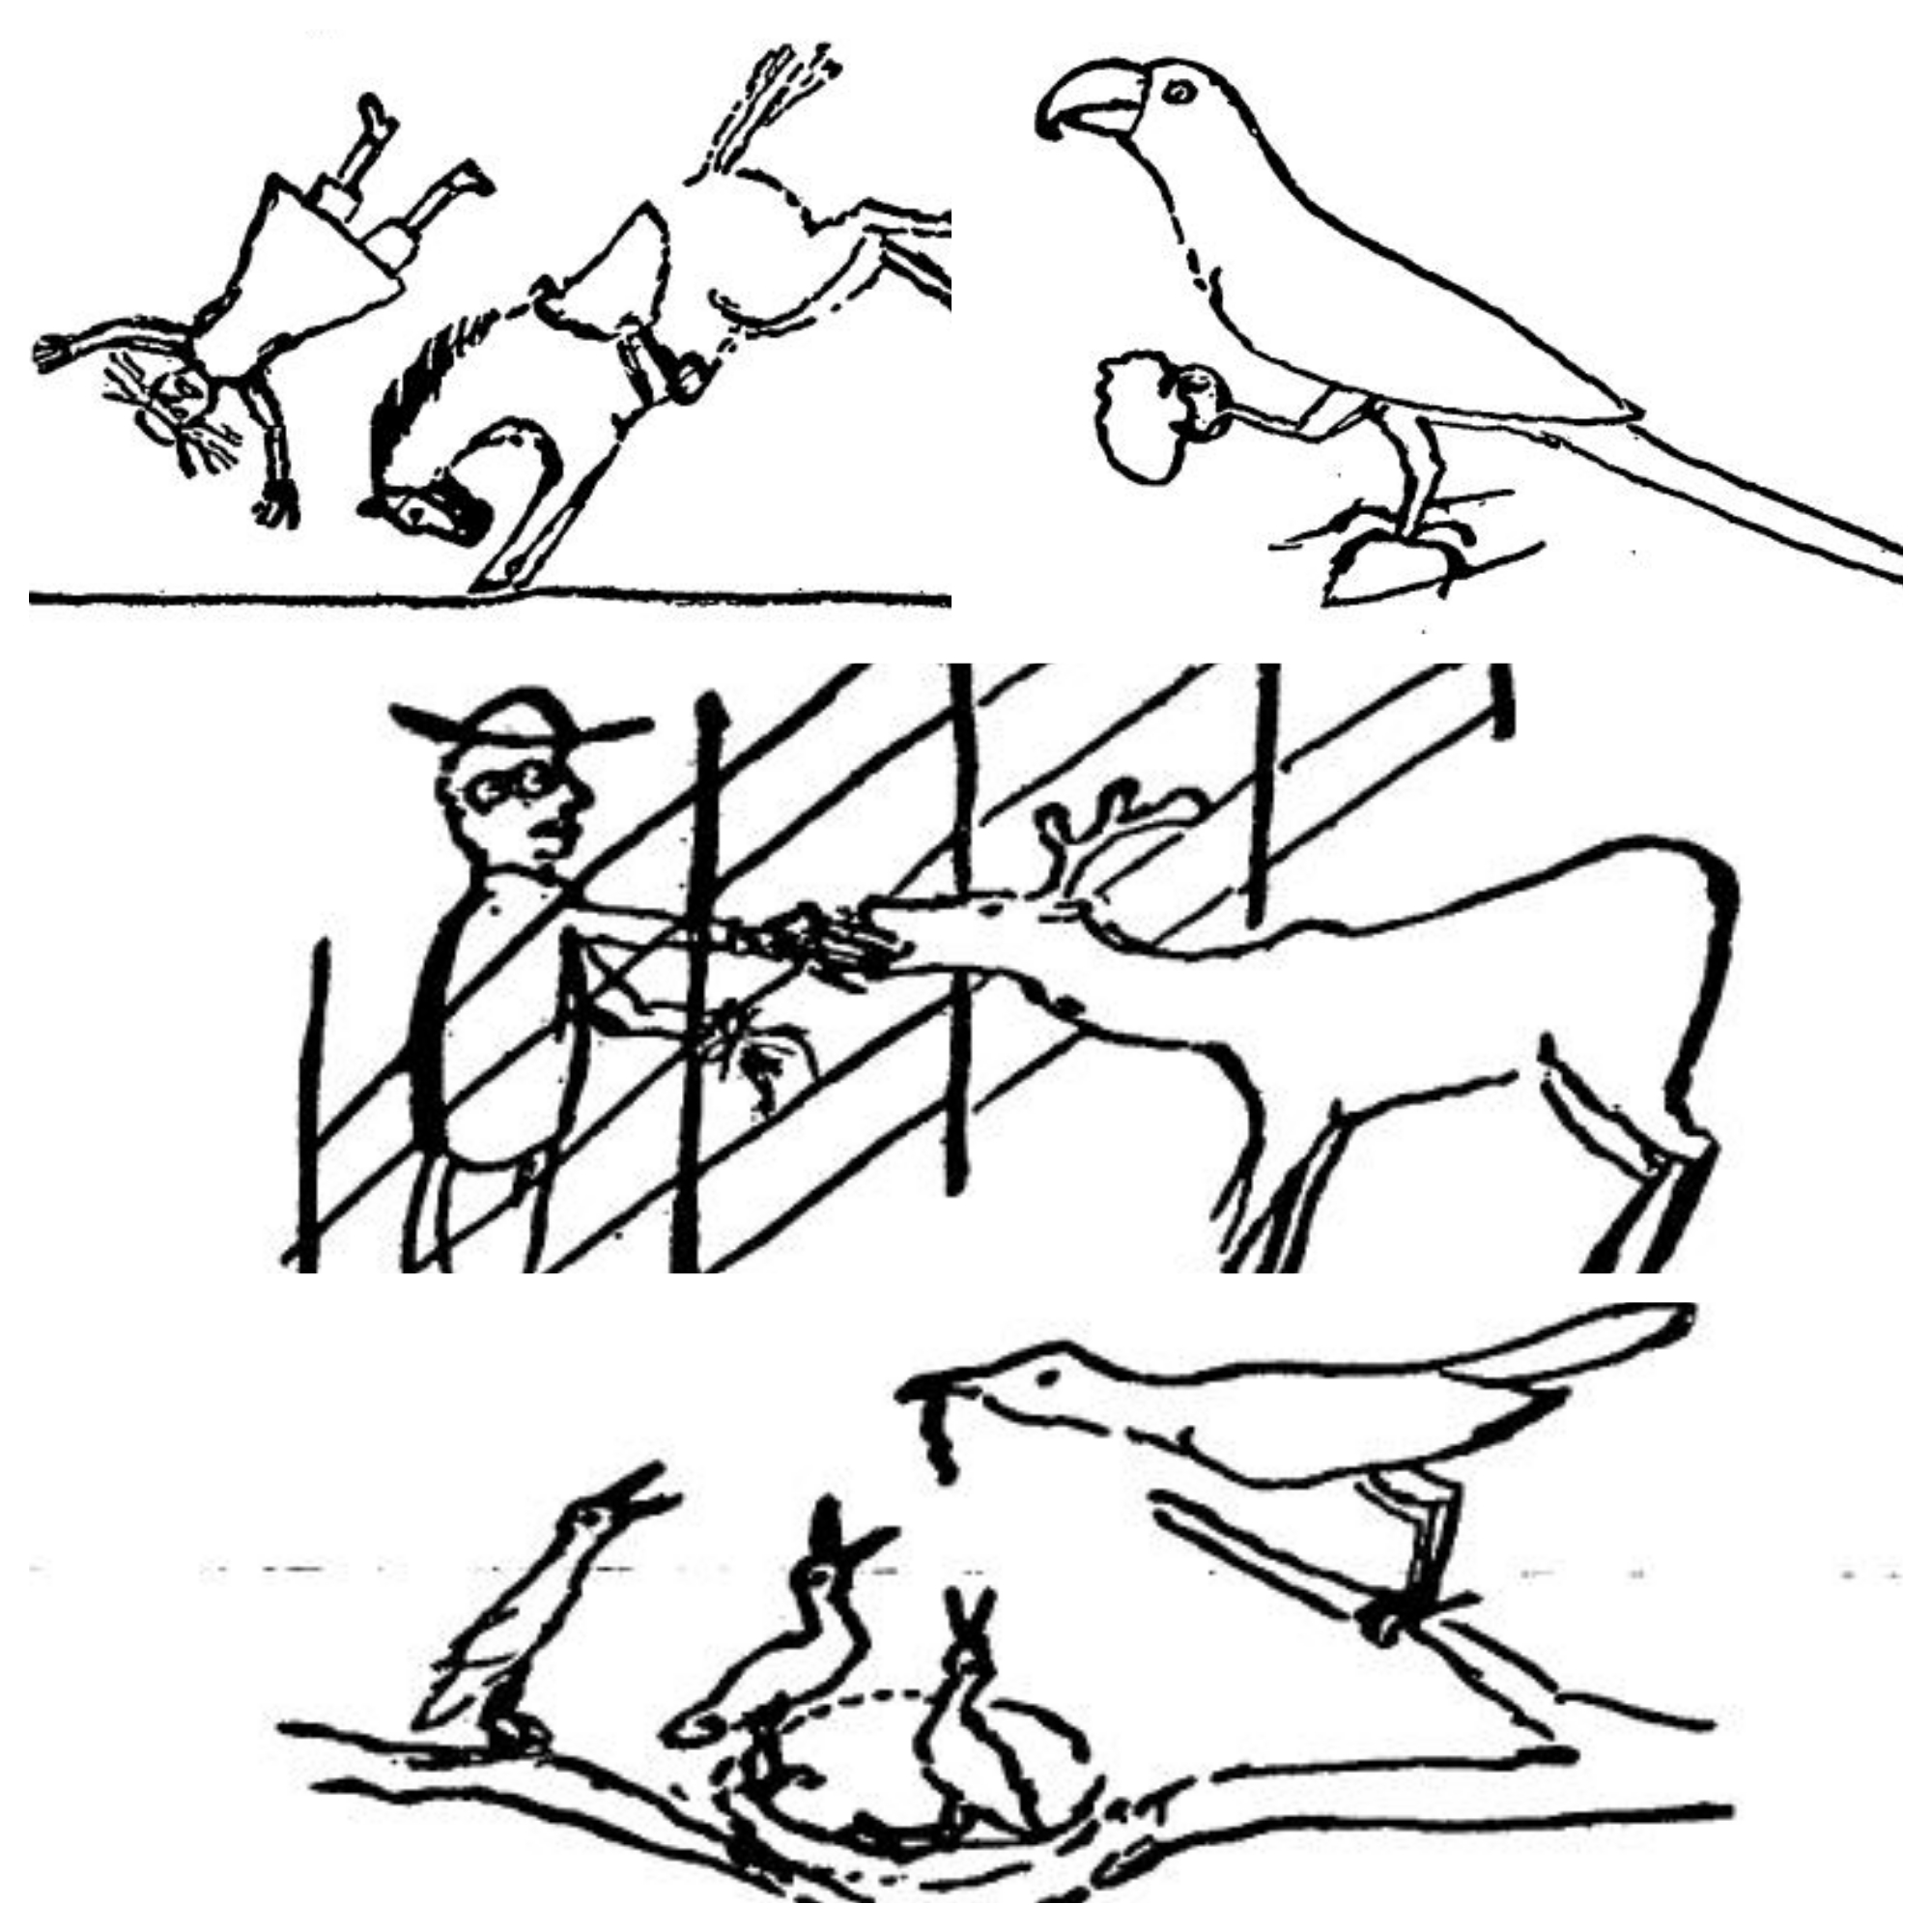 Handmade drawing of different animals and birds.